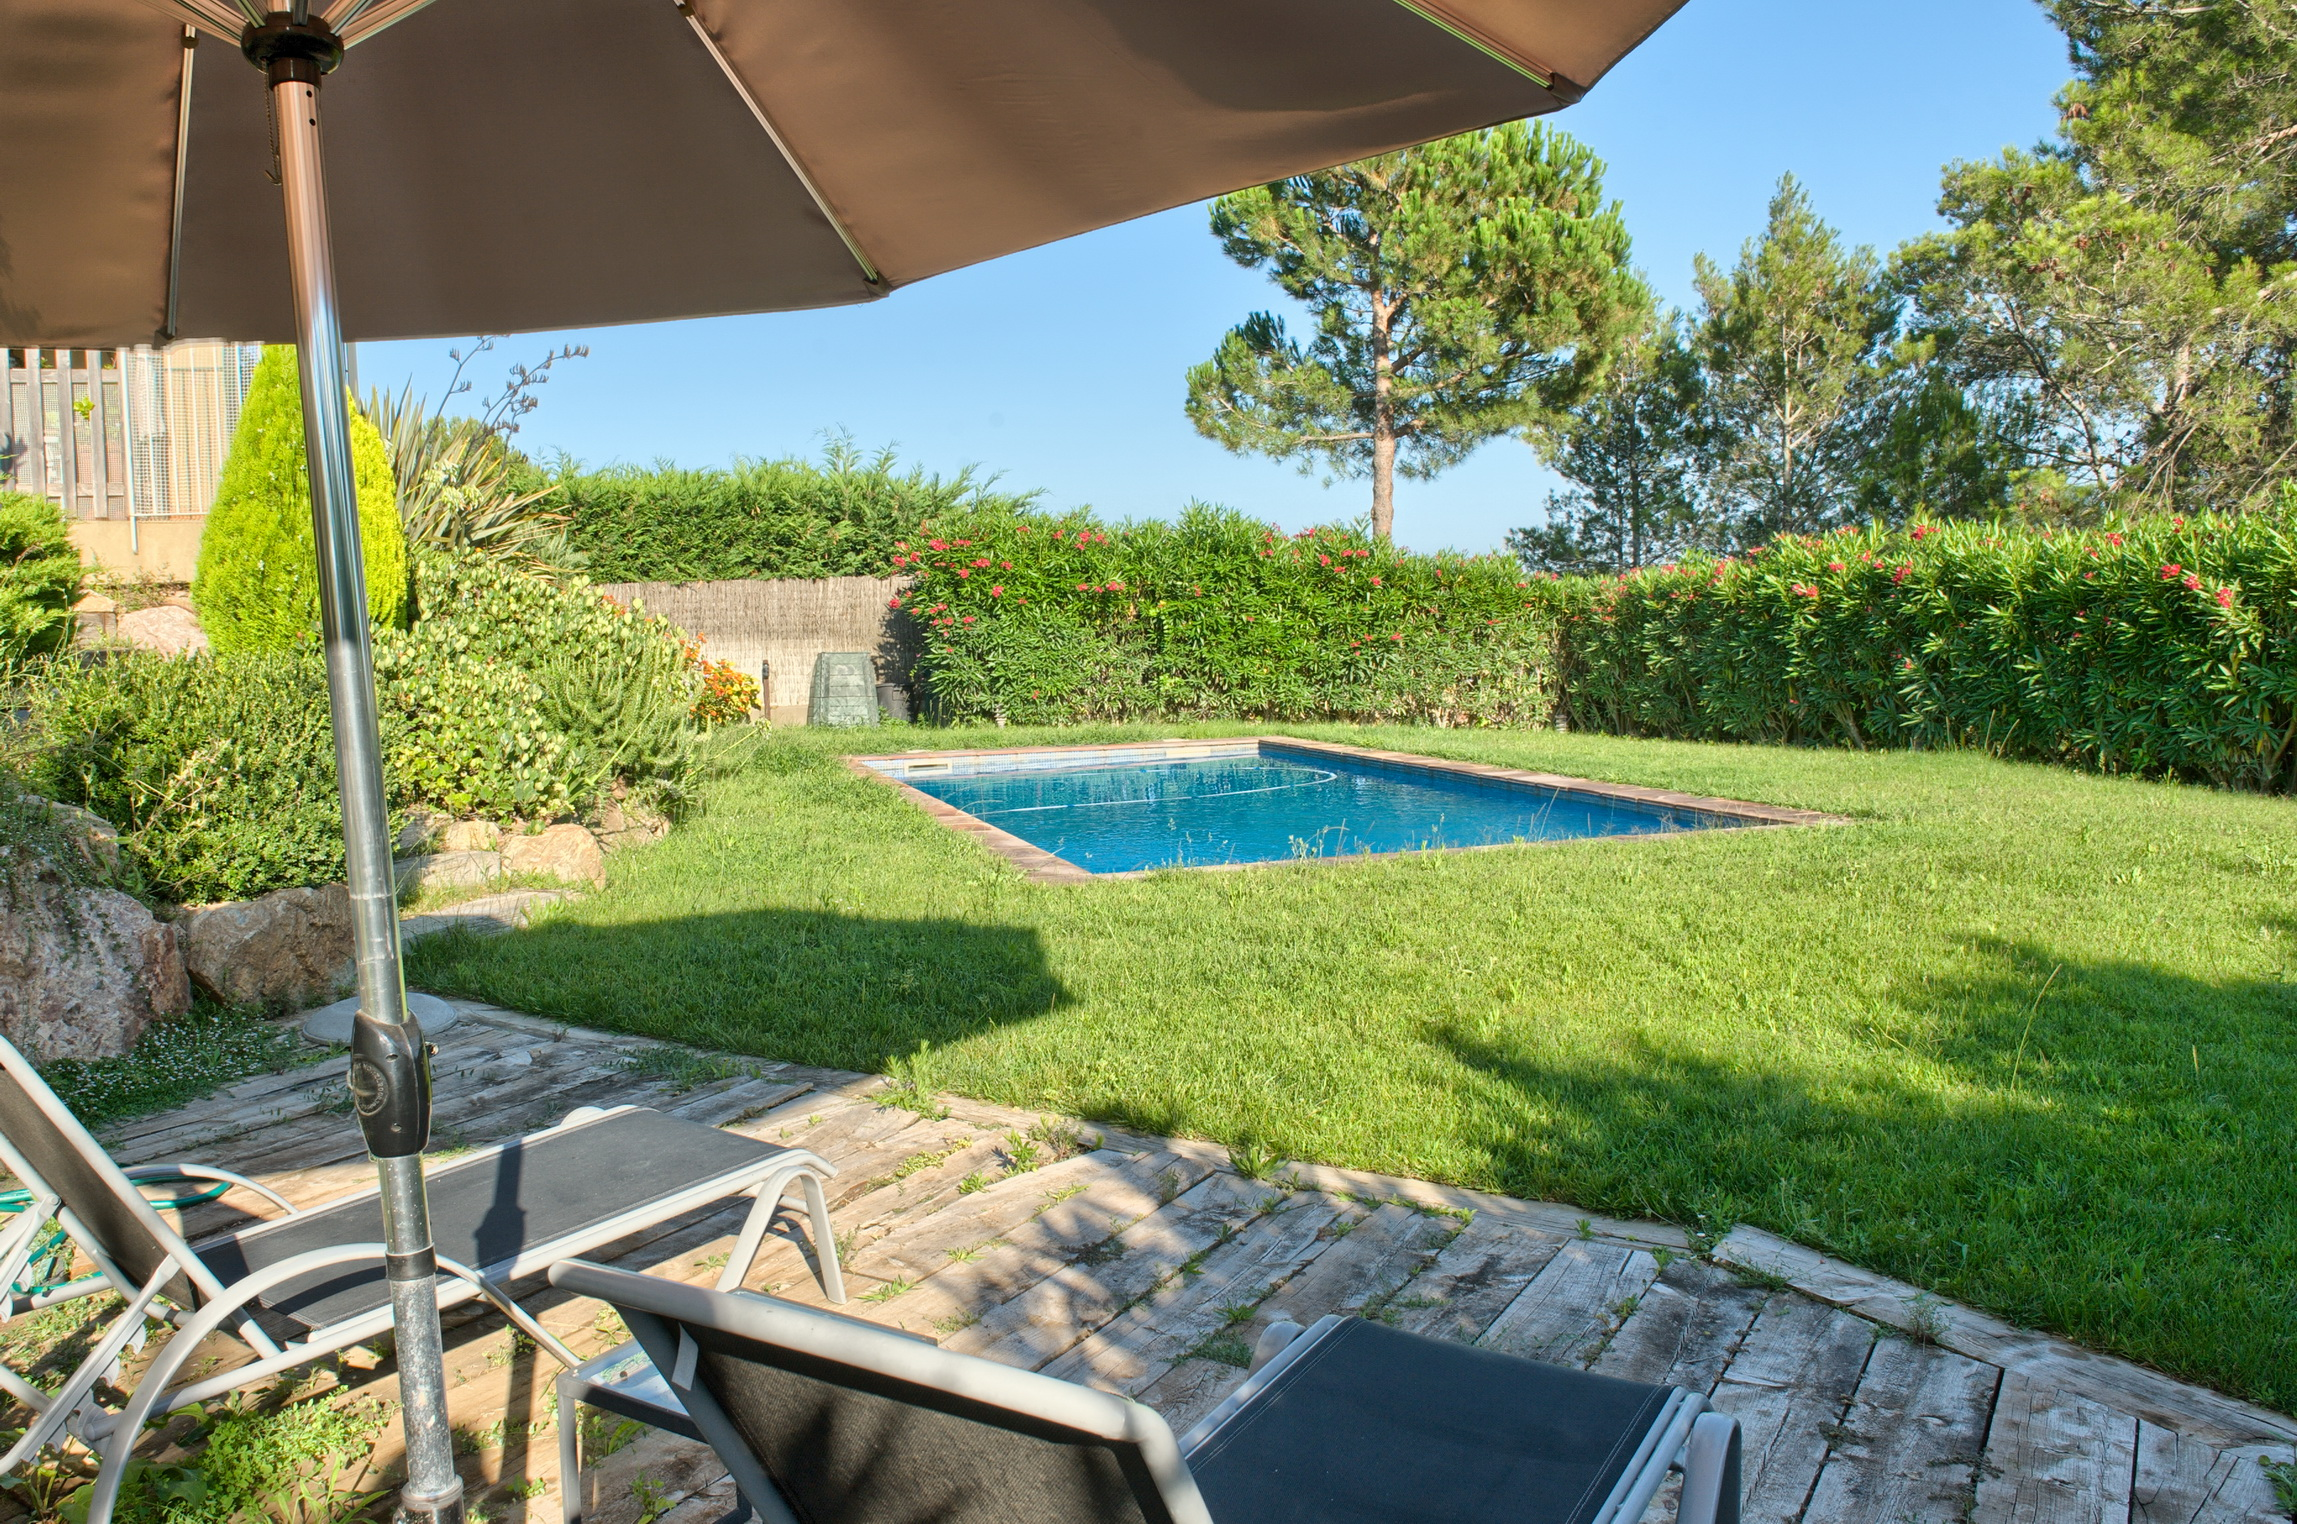 Nhà ở một gia đình vì Bán tại Home in a residential area with views over the unspoilt countryside Other Cities Baix Emporda, Barcelona, 17001 Tây Ban Nha